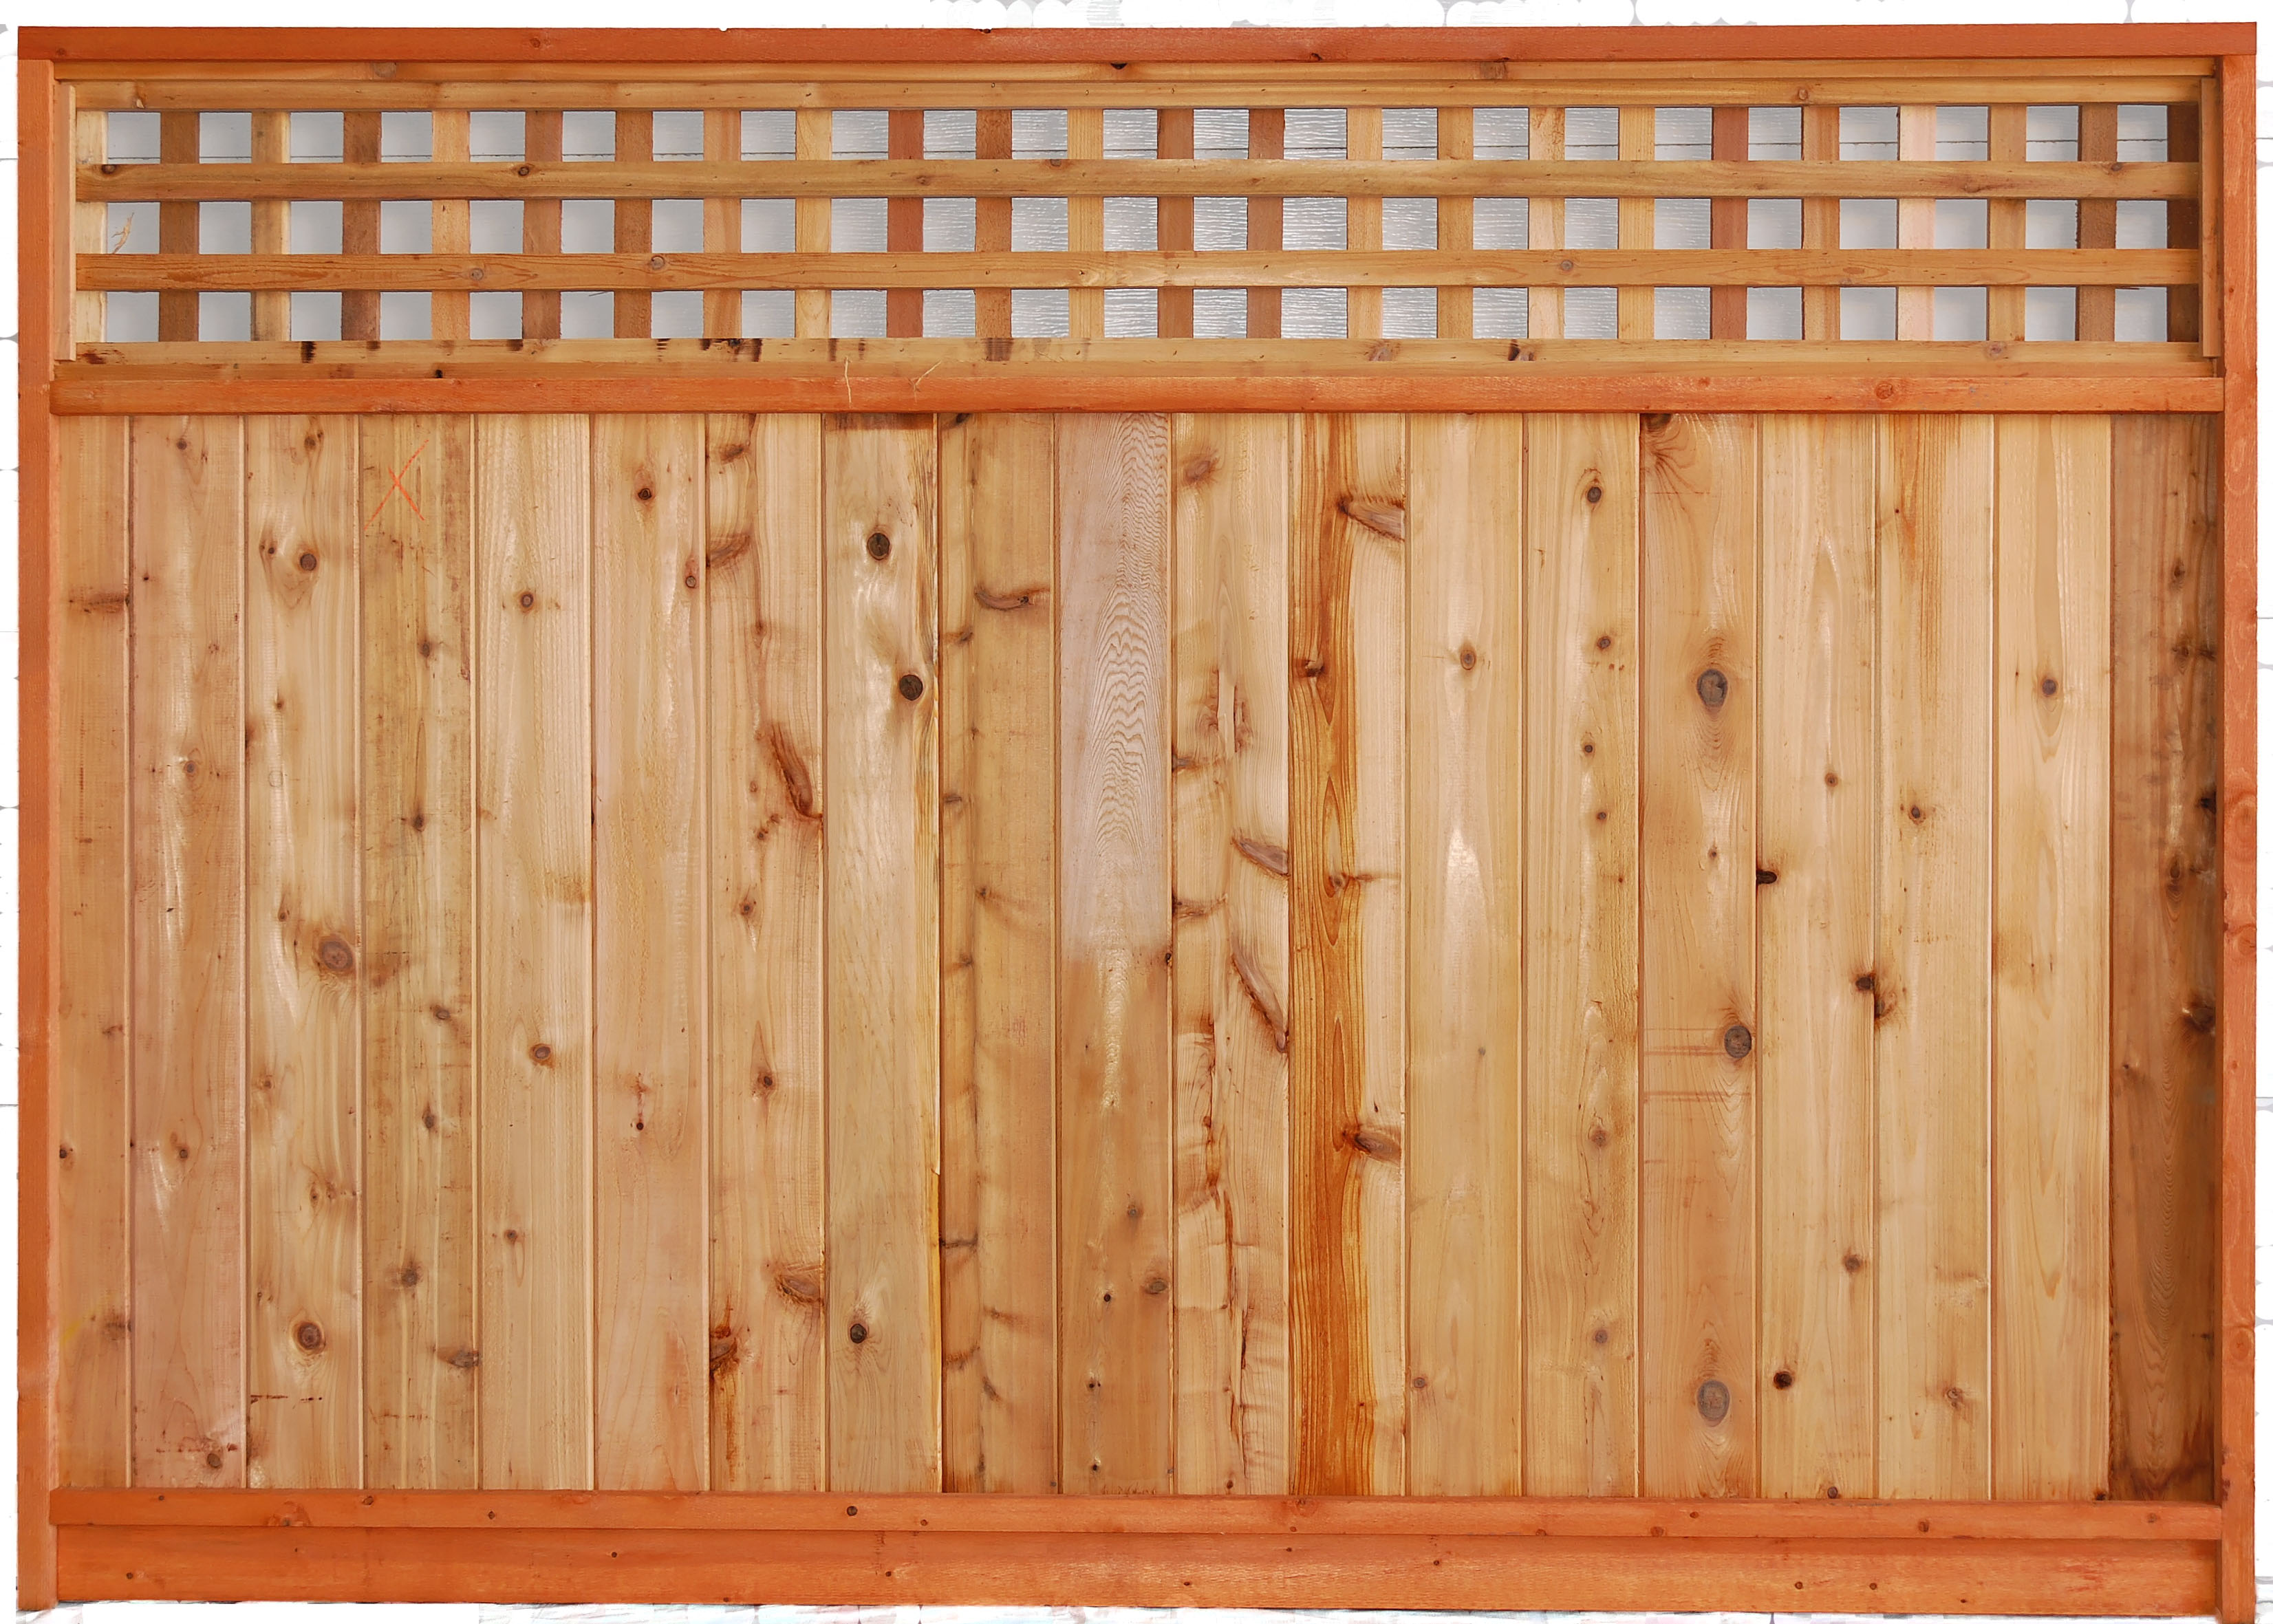 Aim cedar works ltd quality fence panels decks and renovations square top lattice fence panel baanklon Choice Image